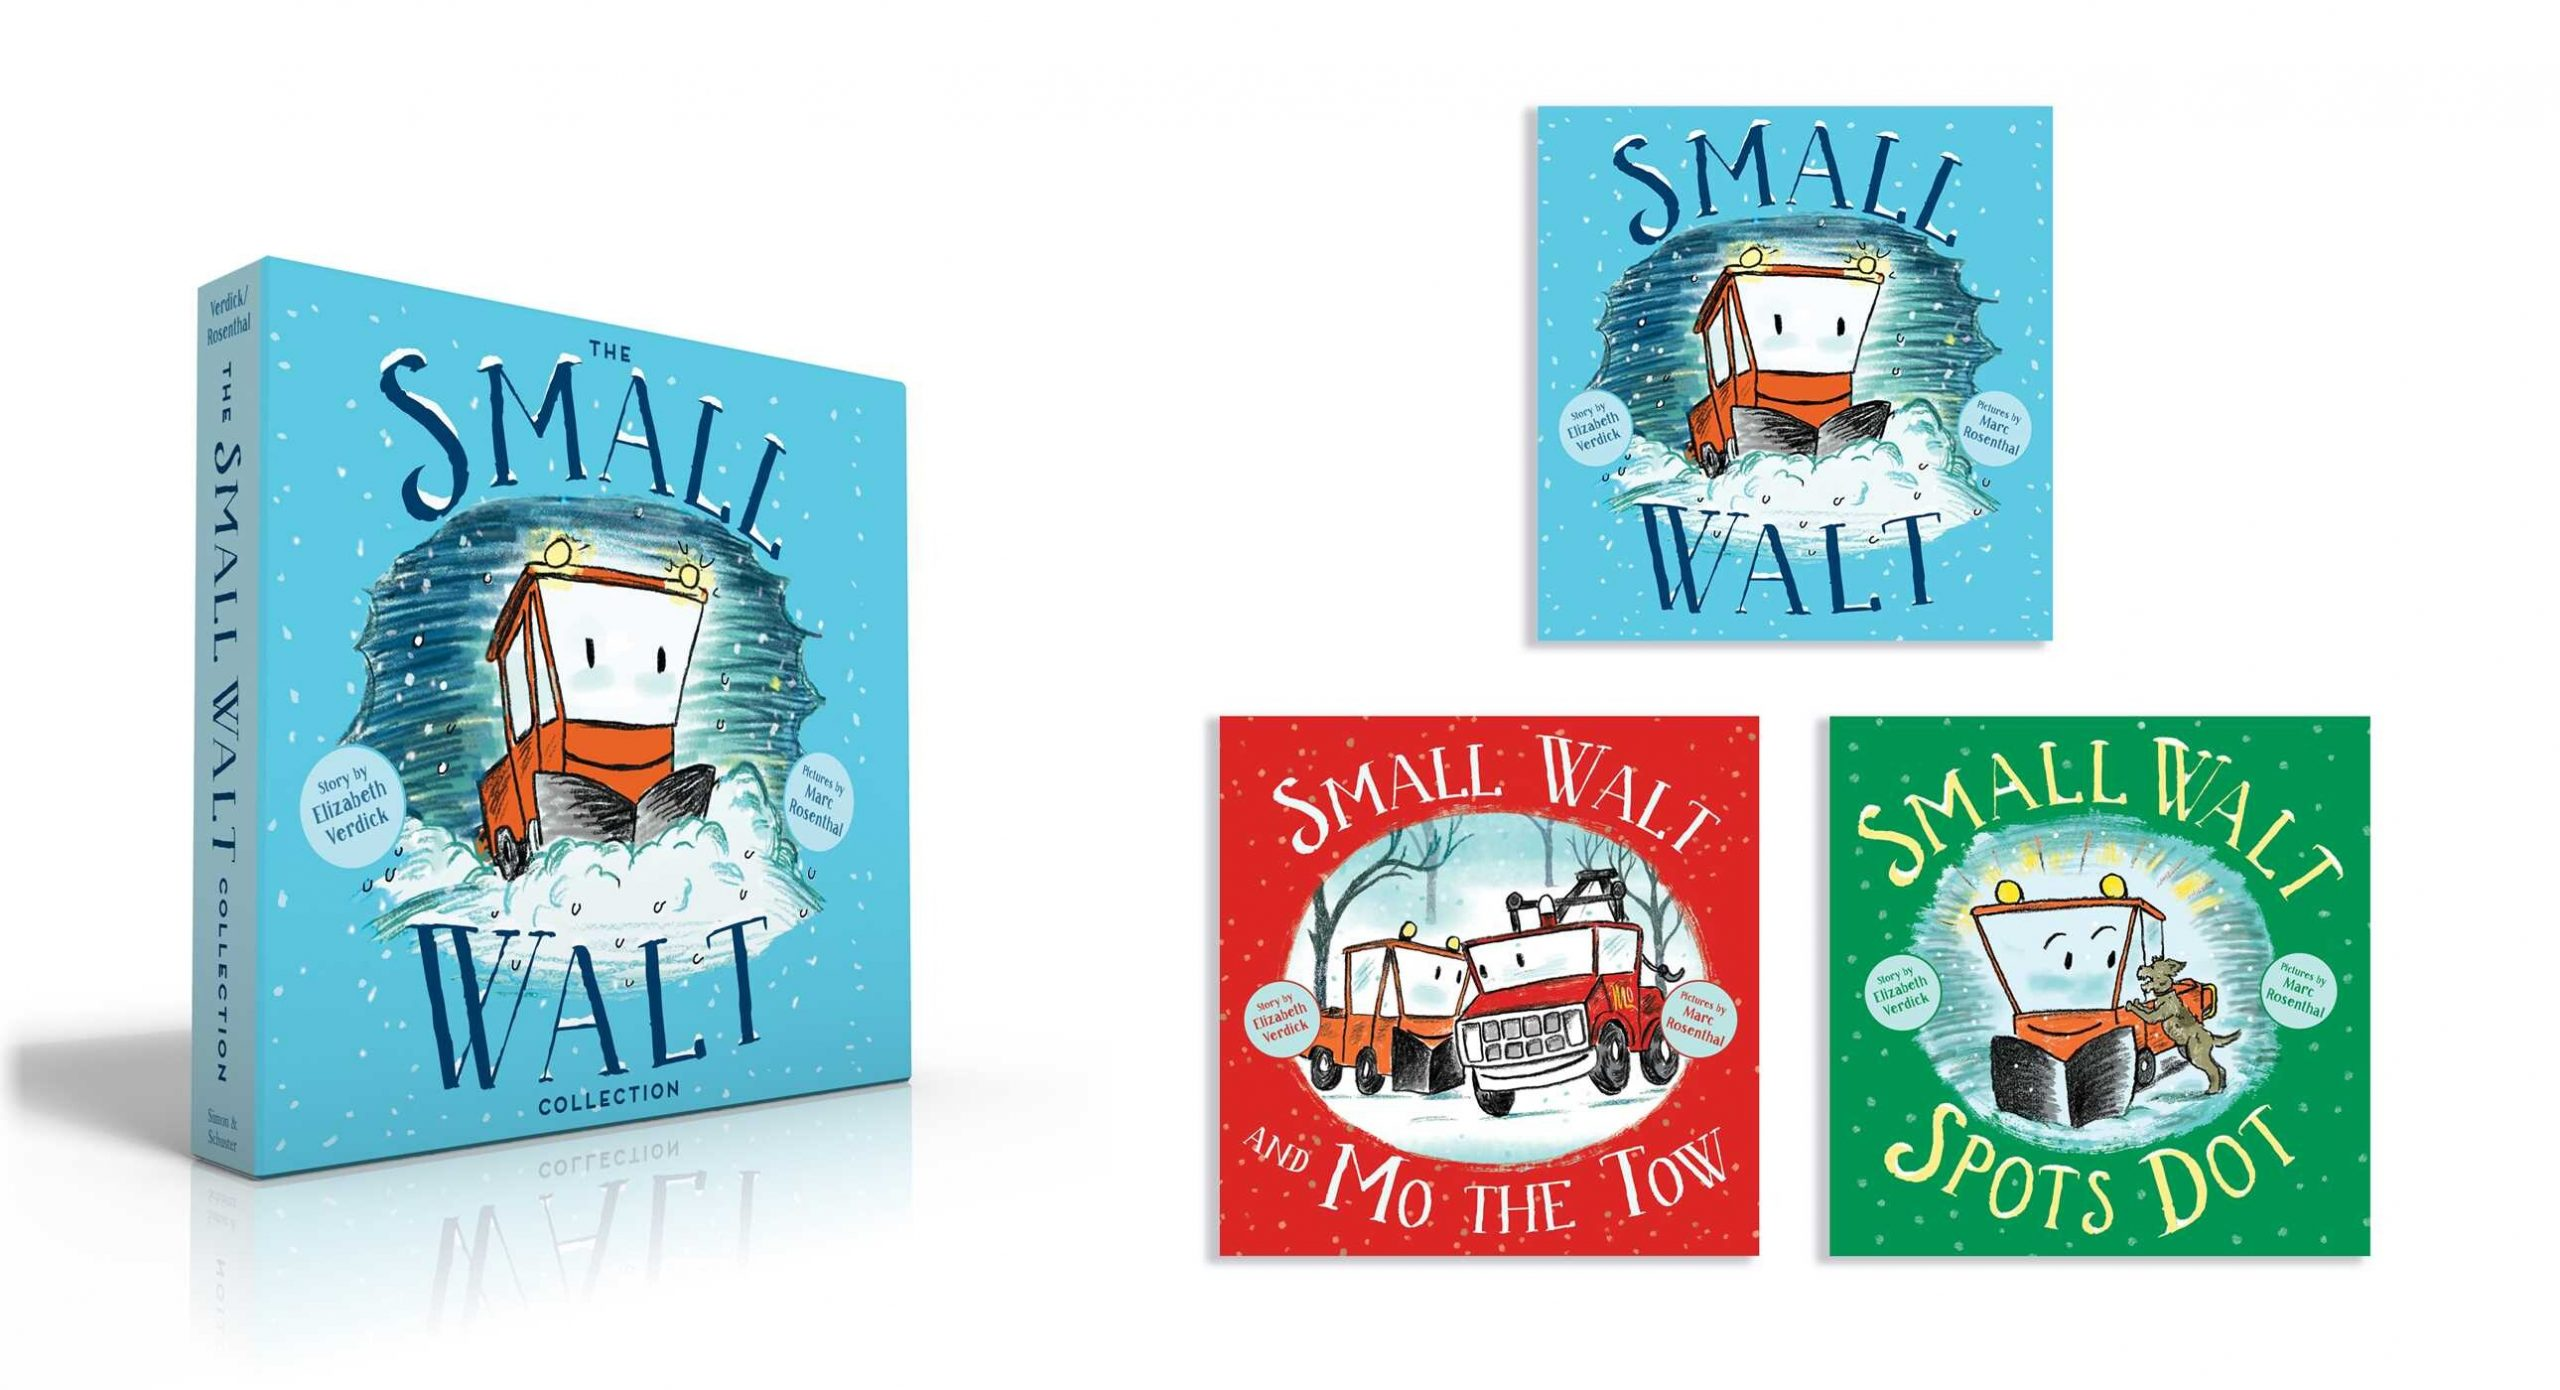 The Small Walt Collection